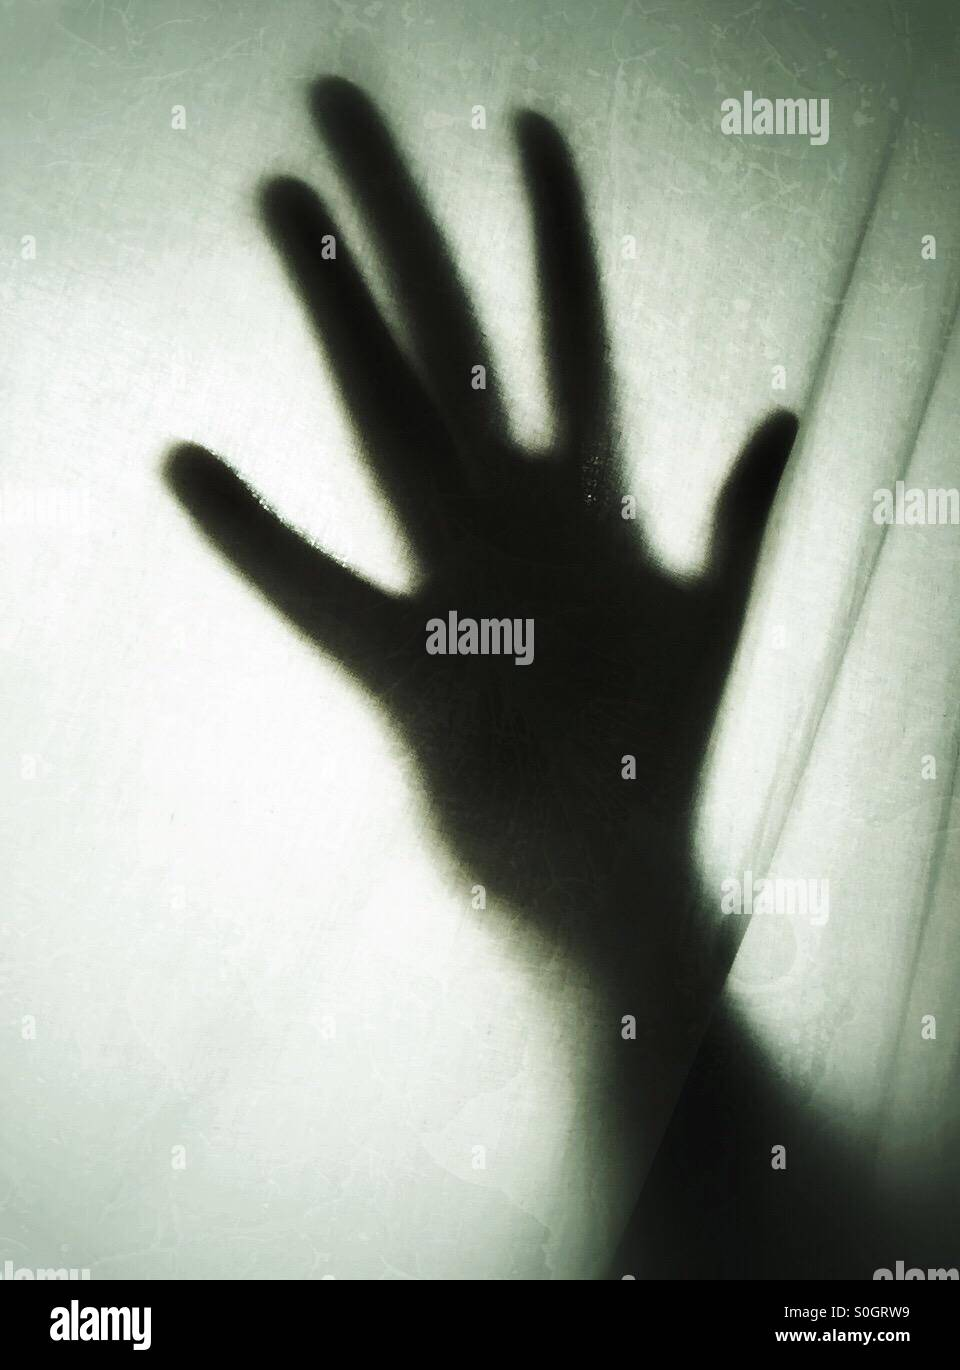 Spooky hand shadow - Stock Image